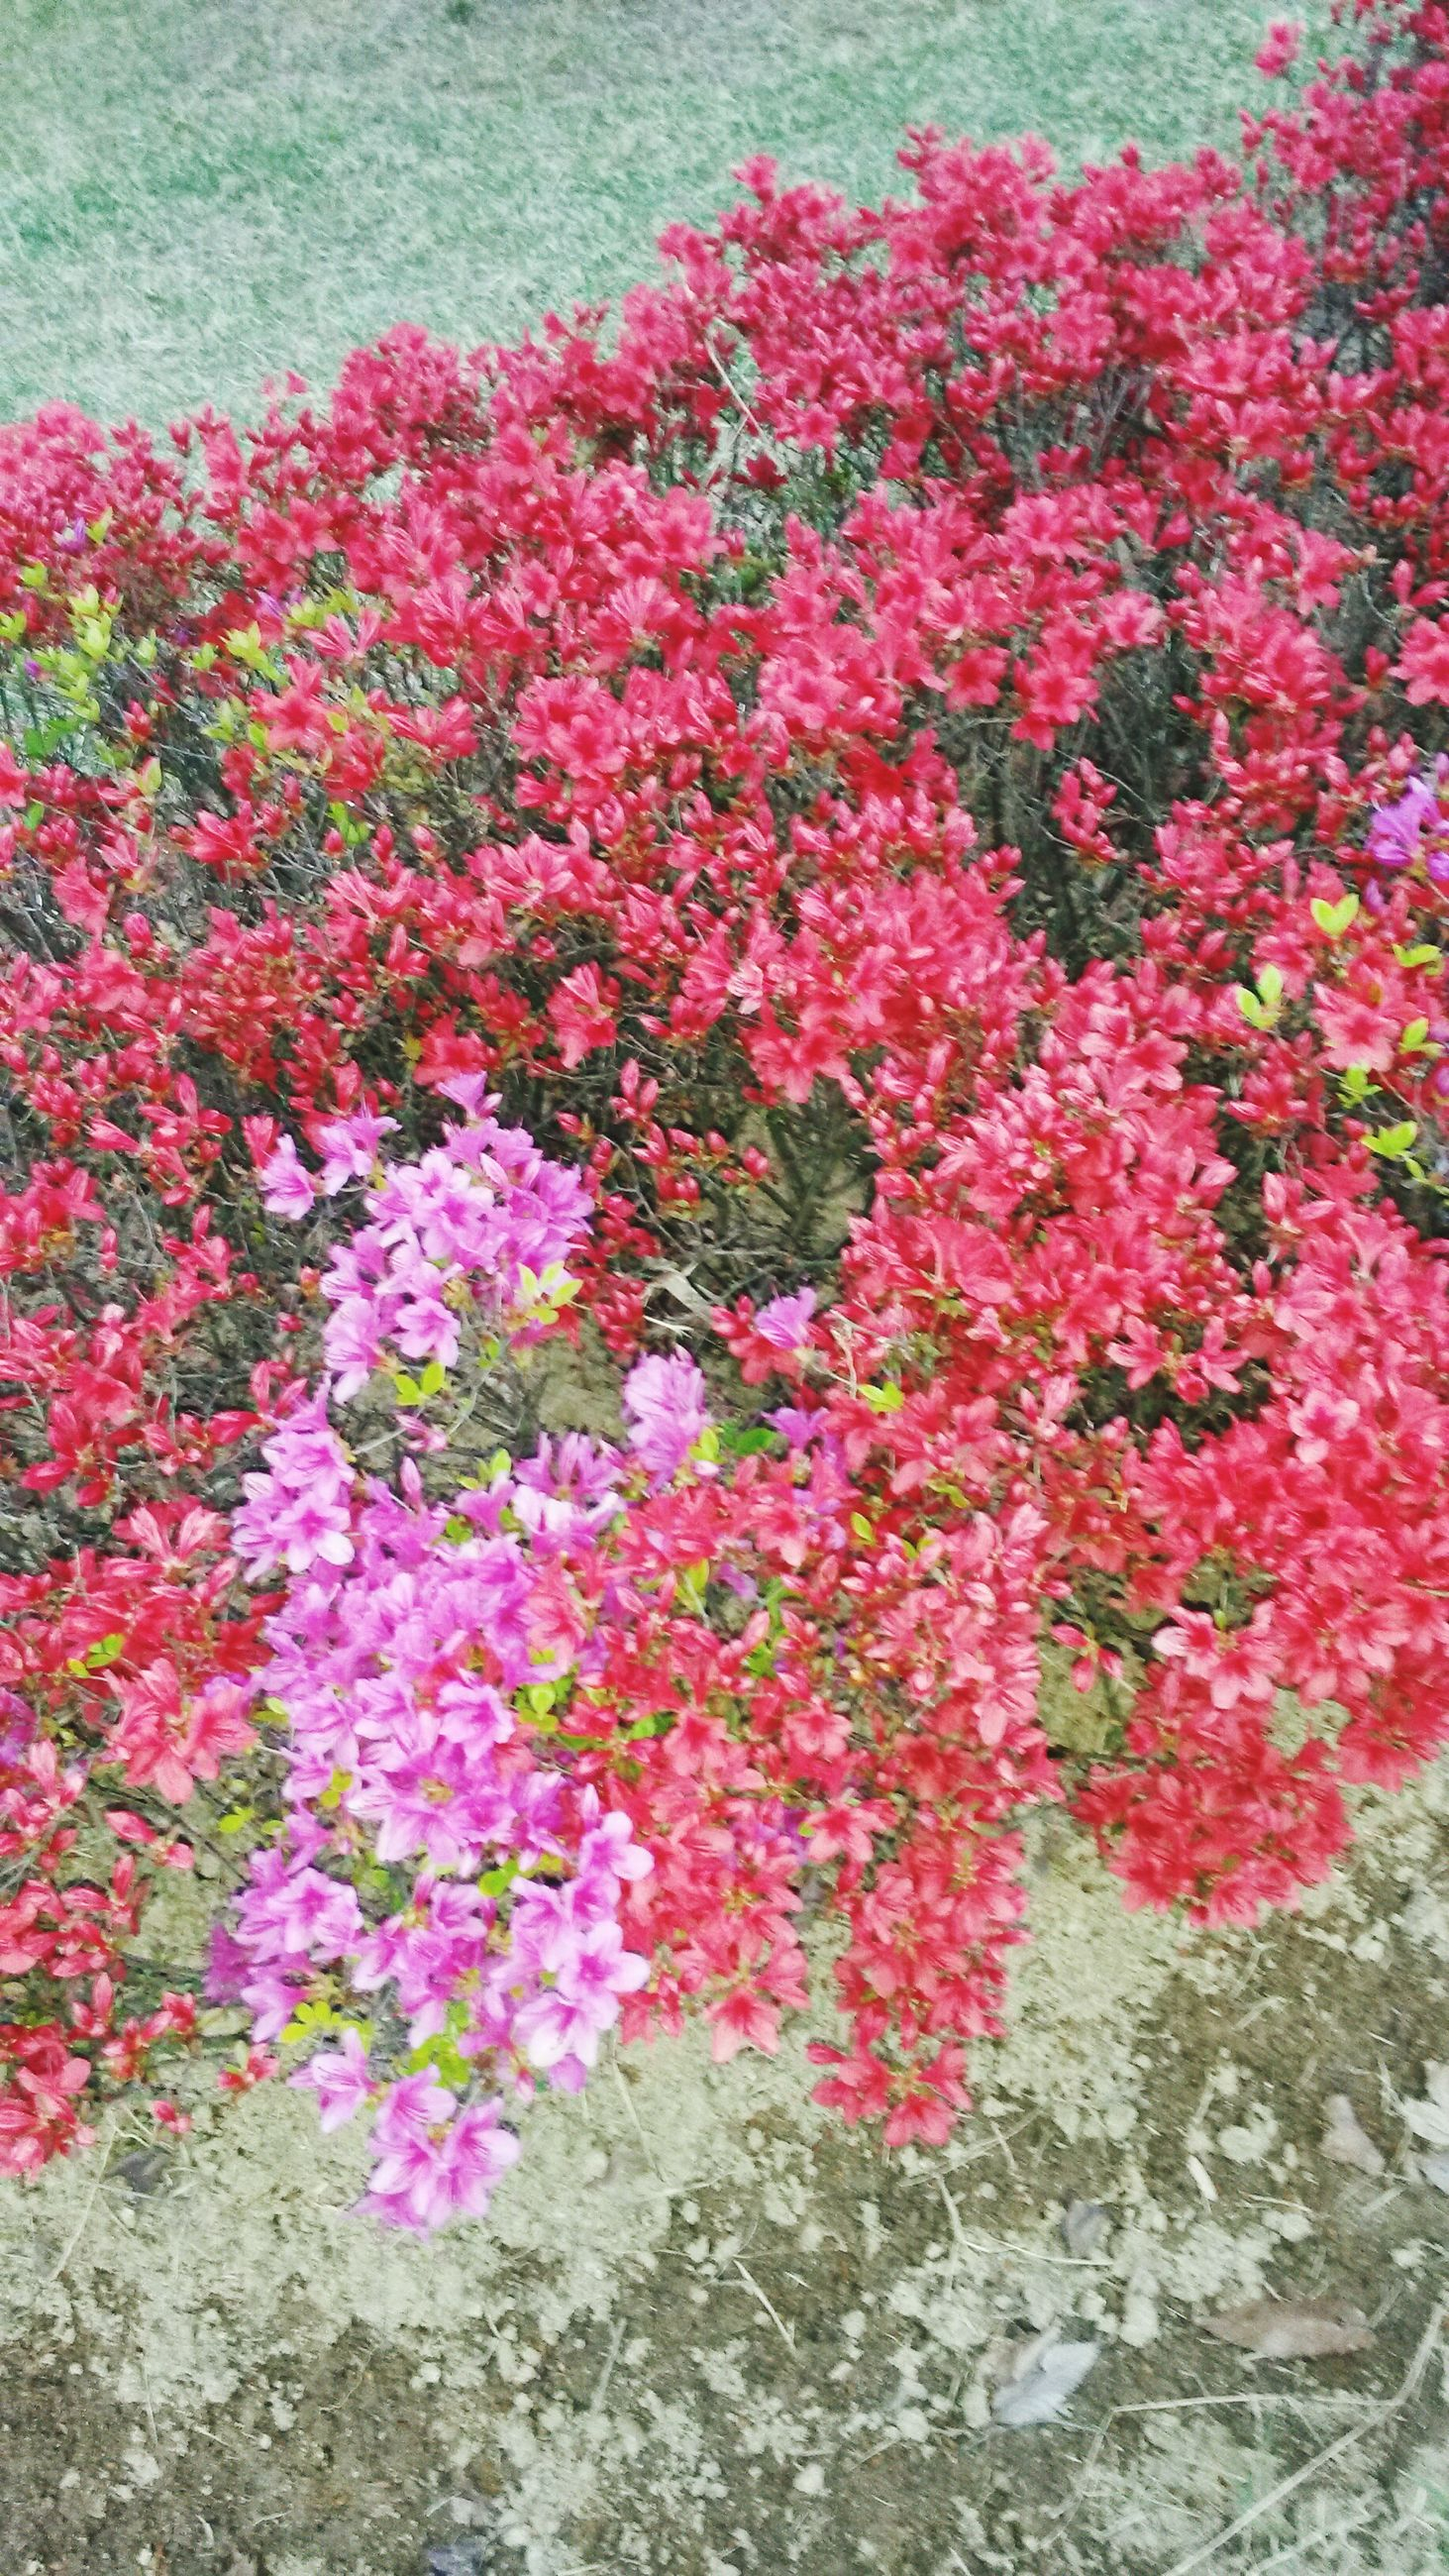 flower, freshness, growth, fragility, beauty in nature, petal, pink color, nature, blooming, plant, red, high angle view, field, flower head, in bloom, day, outdoors, abundance, no people, blossom